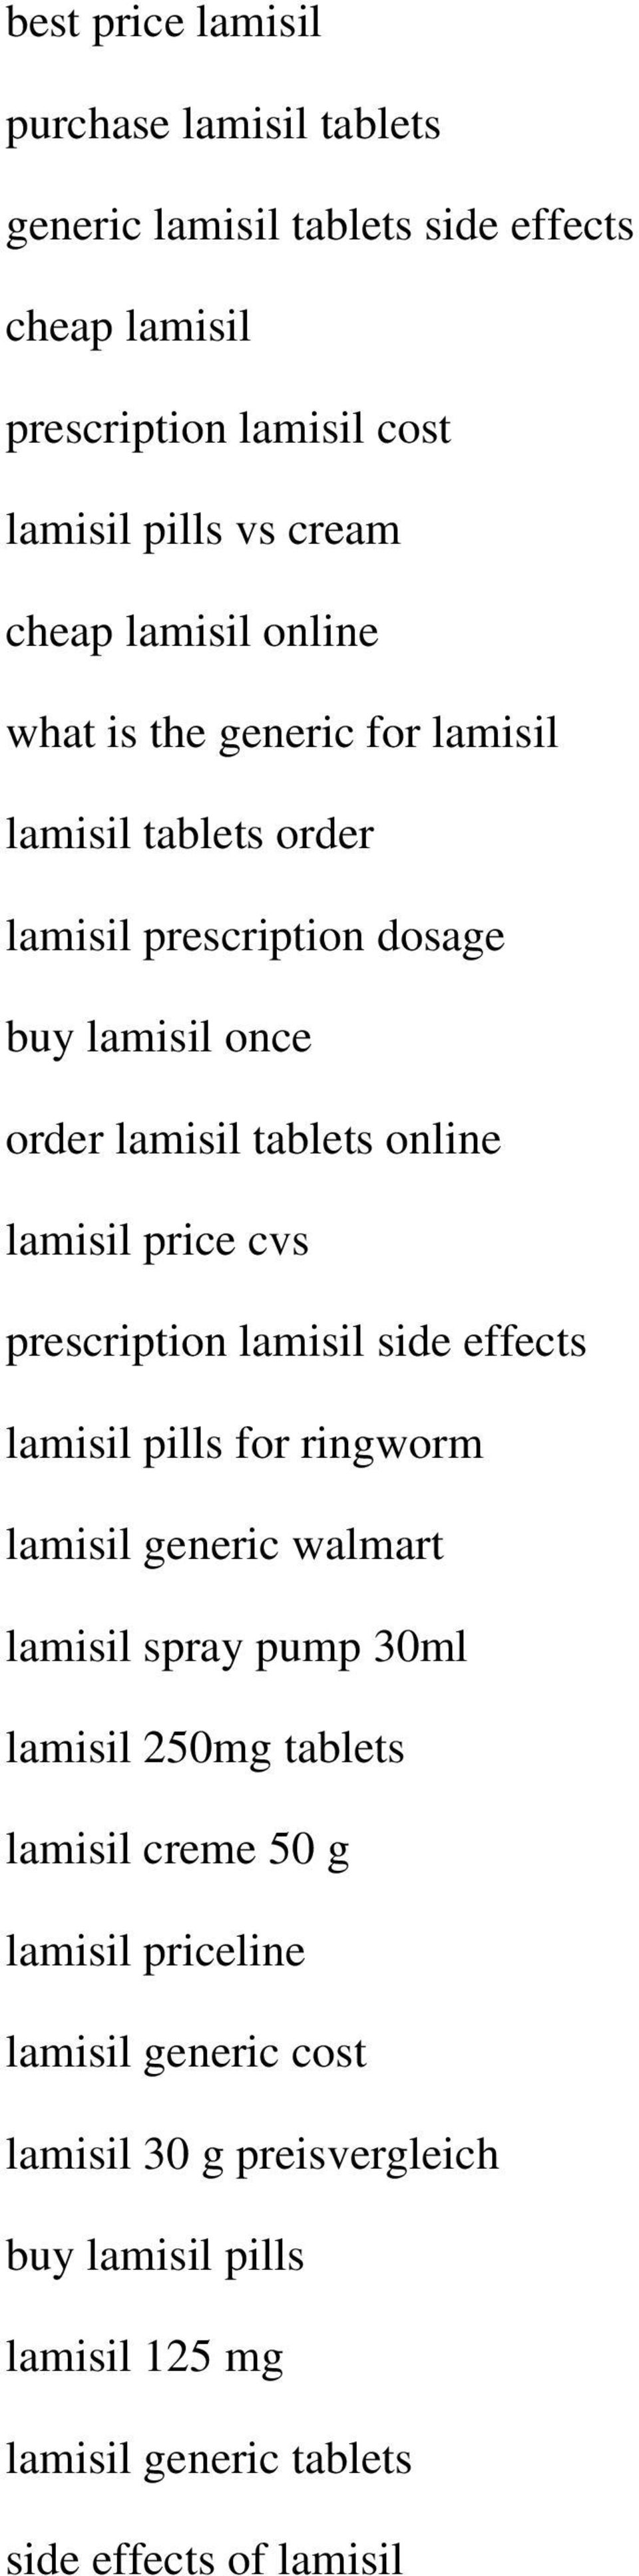 price cvs prescription lamisil side effects lamisil pills for ringworm lamisil generic walmart lamisil spray pump 30ml lamisil 250mg tablets lamisil